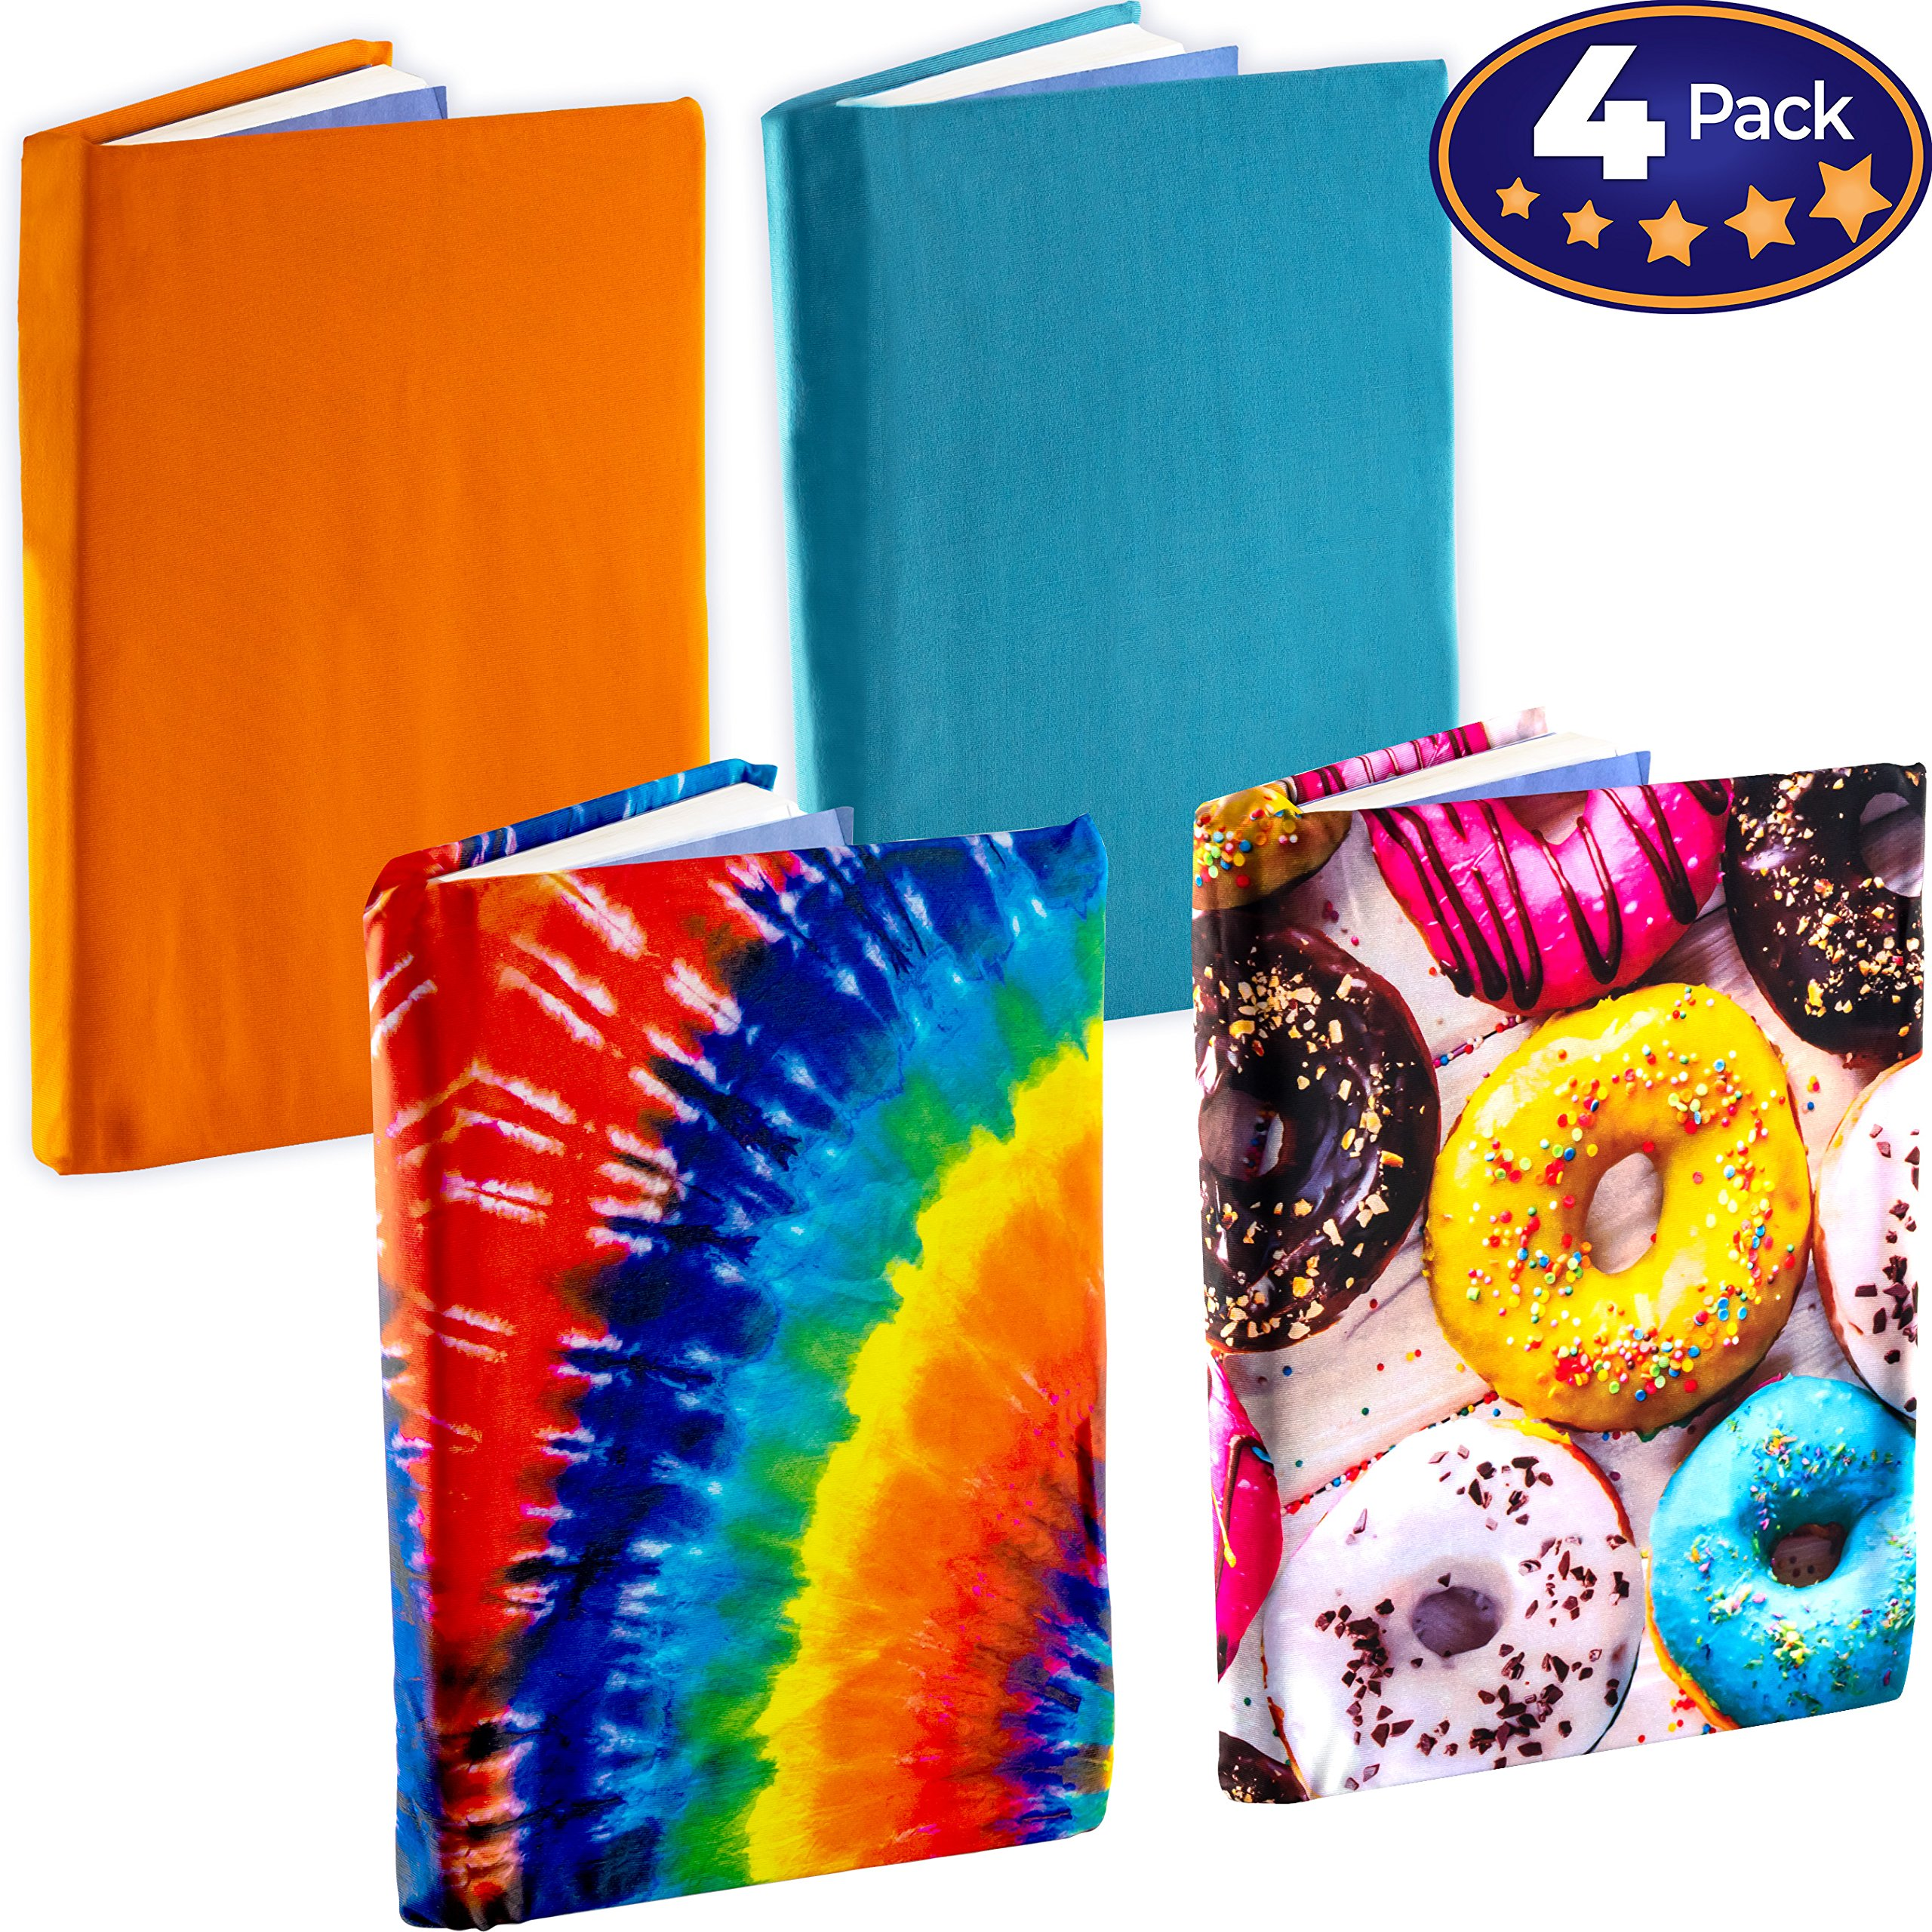 Jumbo, Stretchable Book Cover Color 4 Pack. Fits Most Hardcover Textbooks up to 9 x 11. Adhesive-Free, Nylon Fabric Protectors are A Needed School Supply for Students. (Neutral 1)